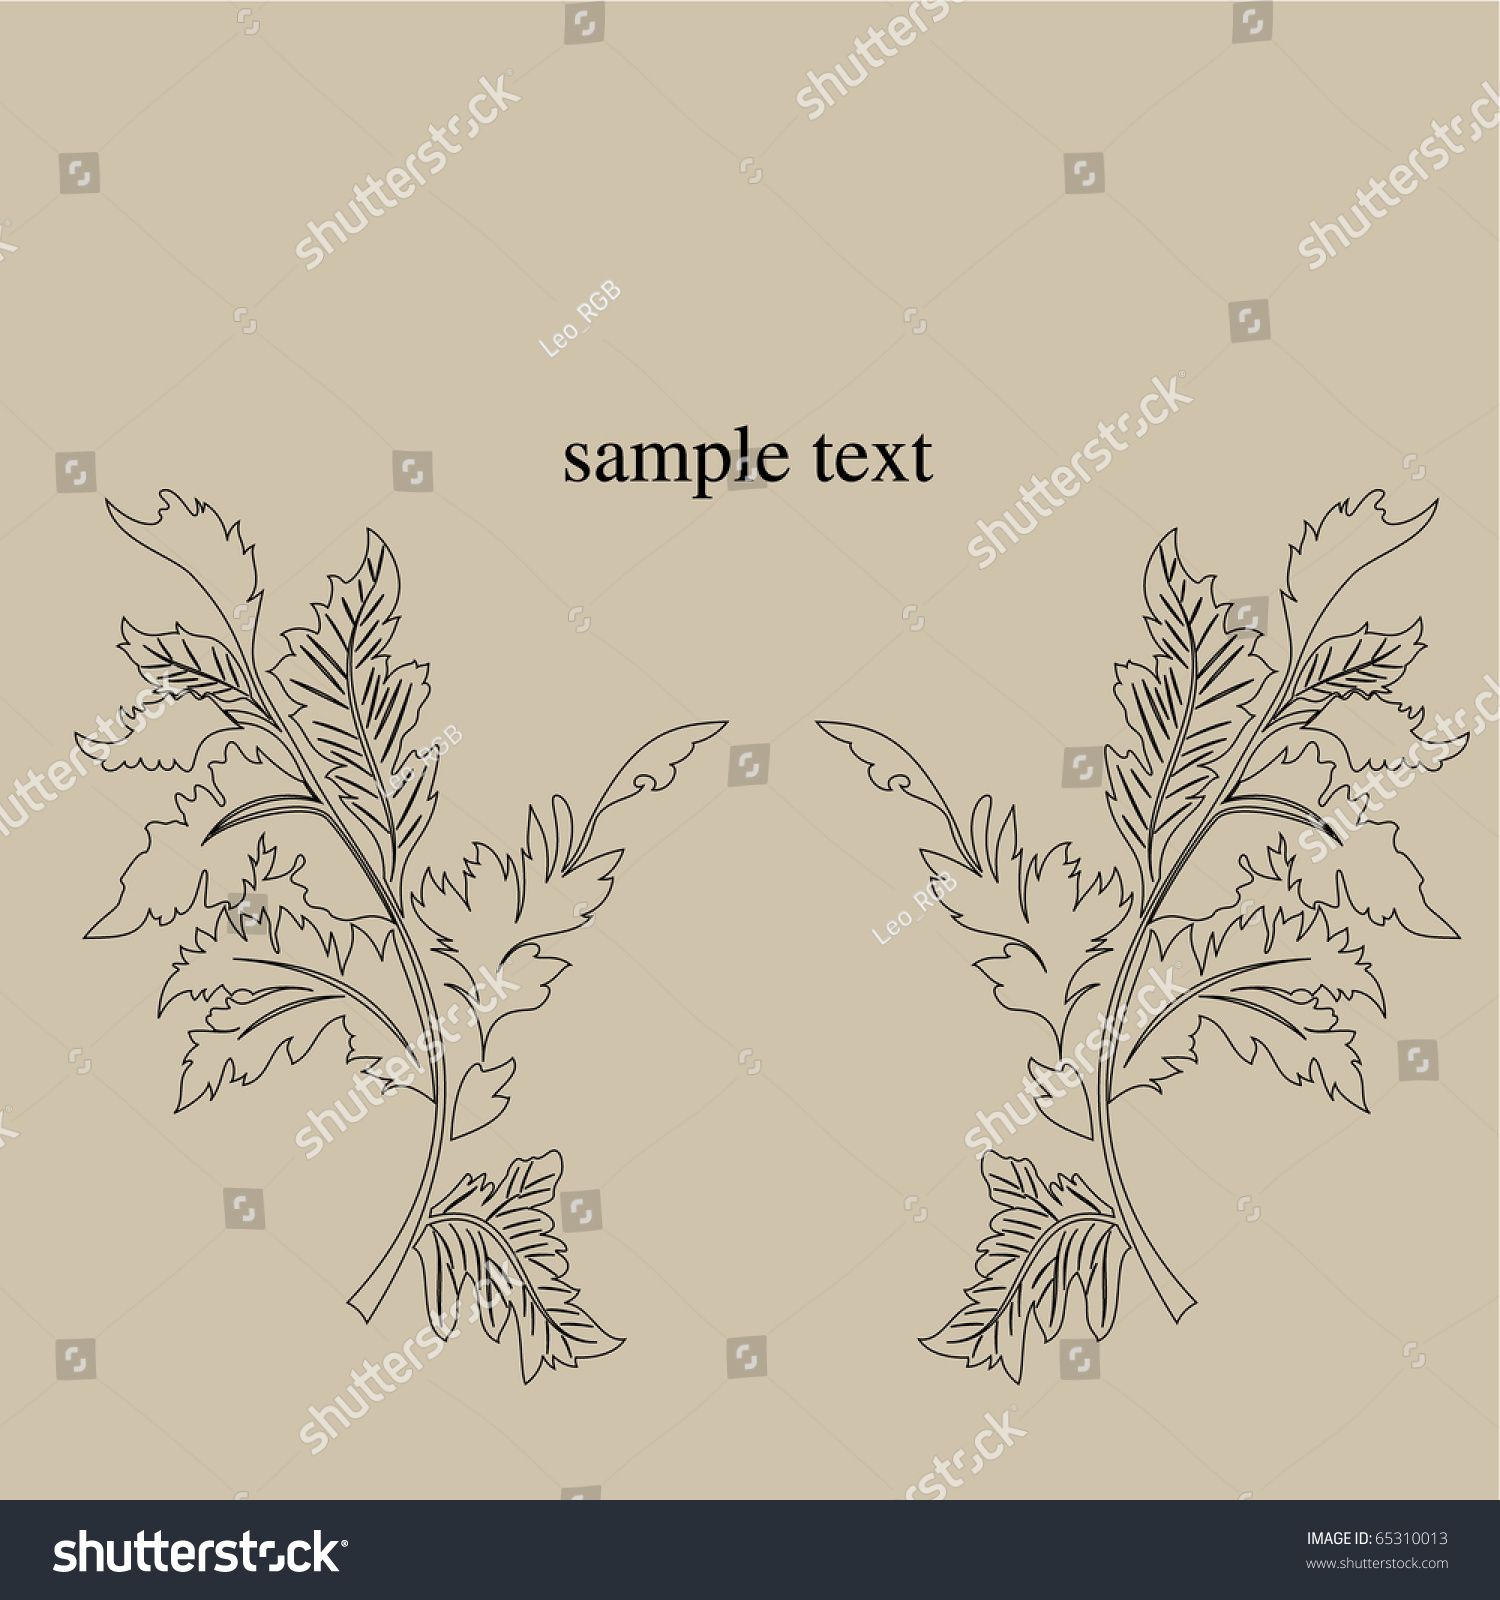 Vector Drawing Lines Html : Vector line drawing patterns background stock